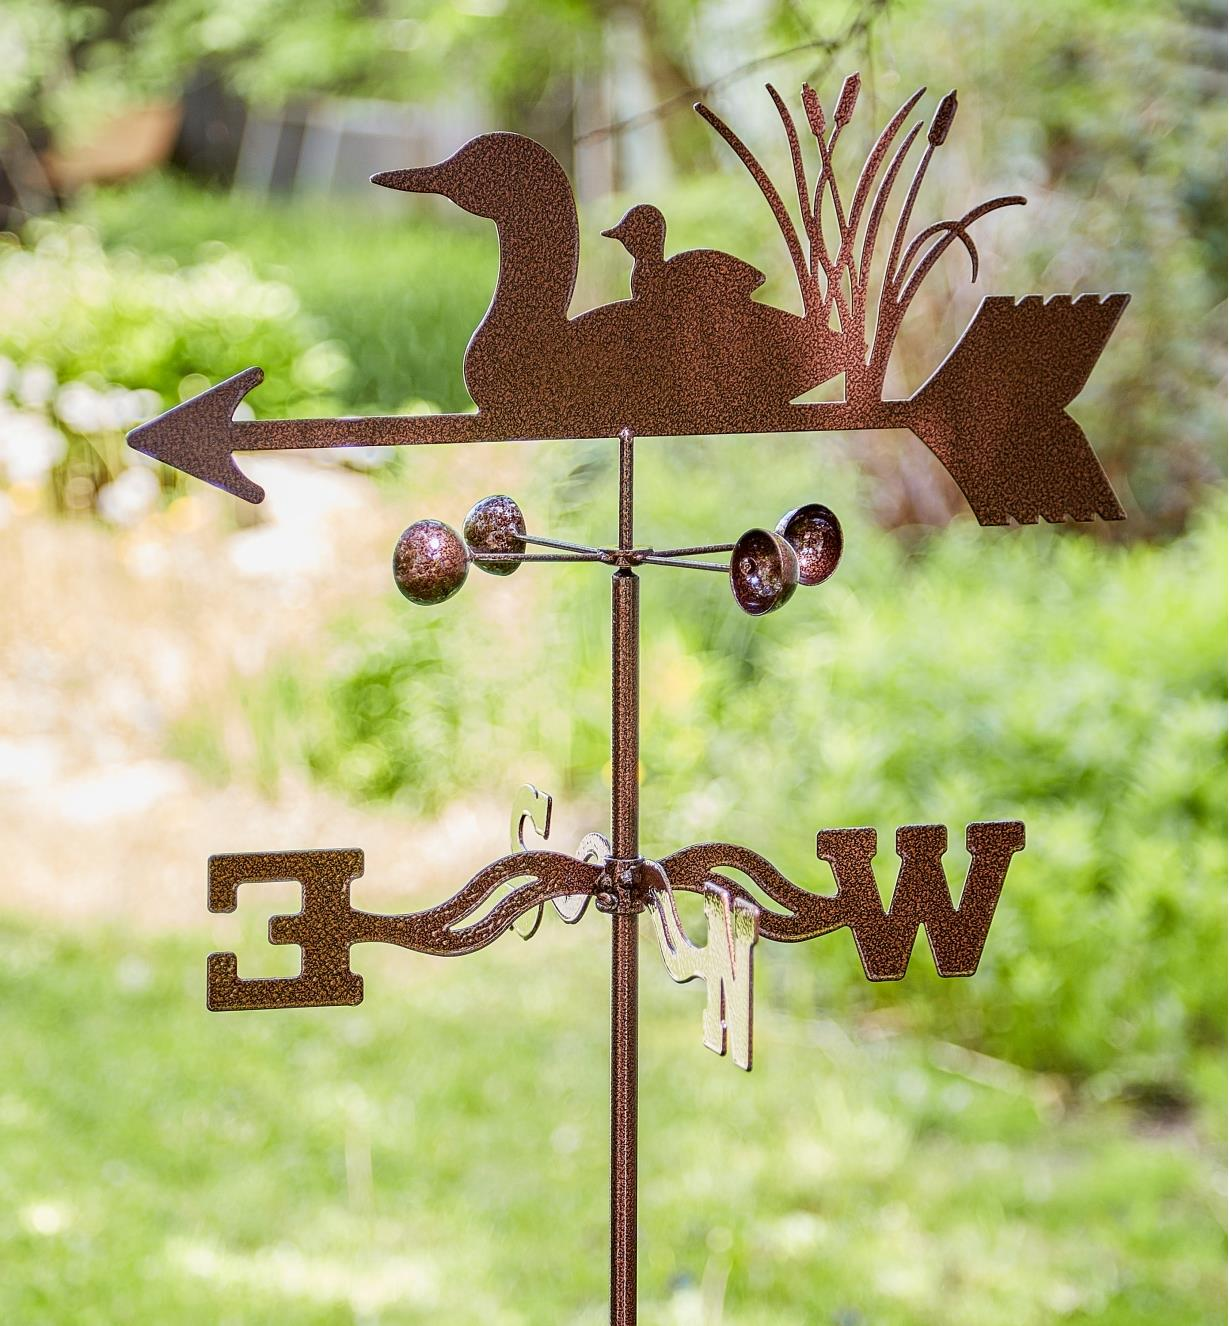 The topper, wind cups and directional of the loon garden weathervane